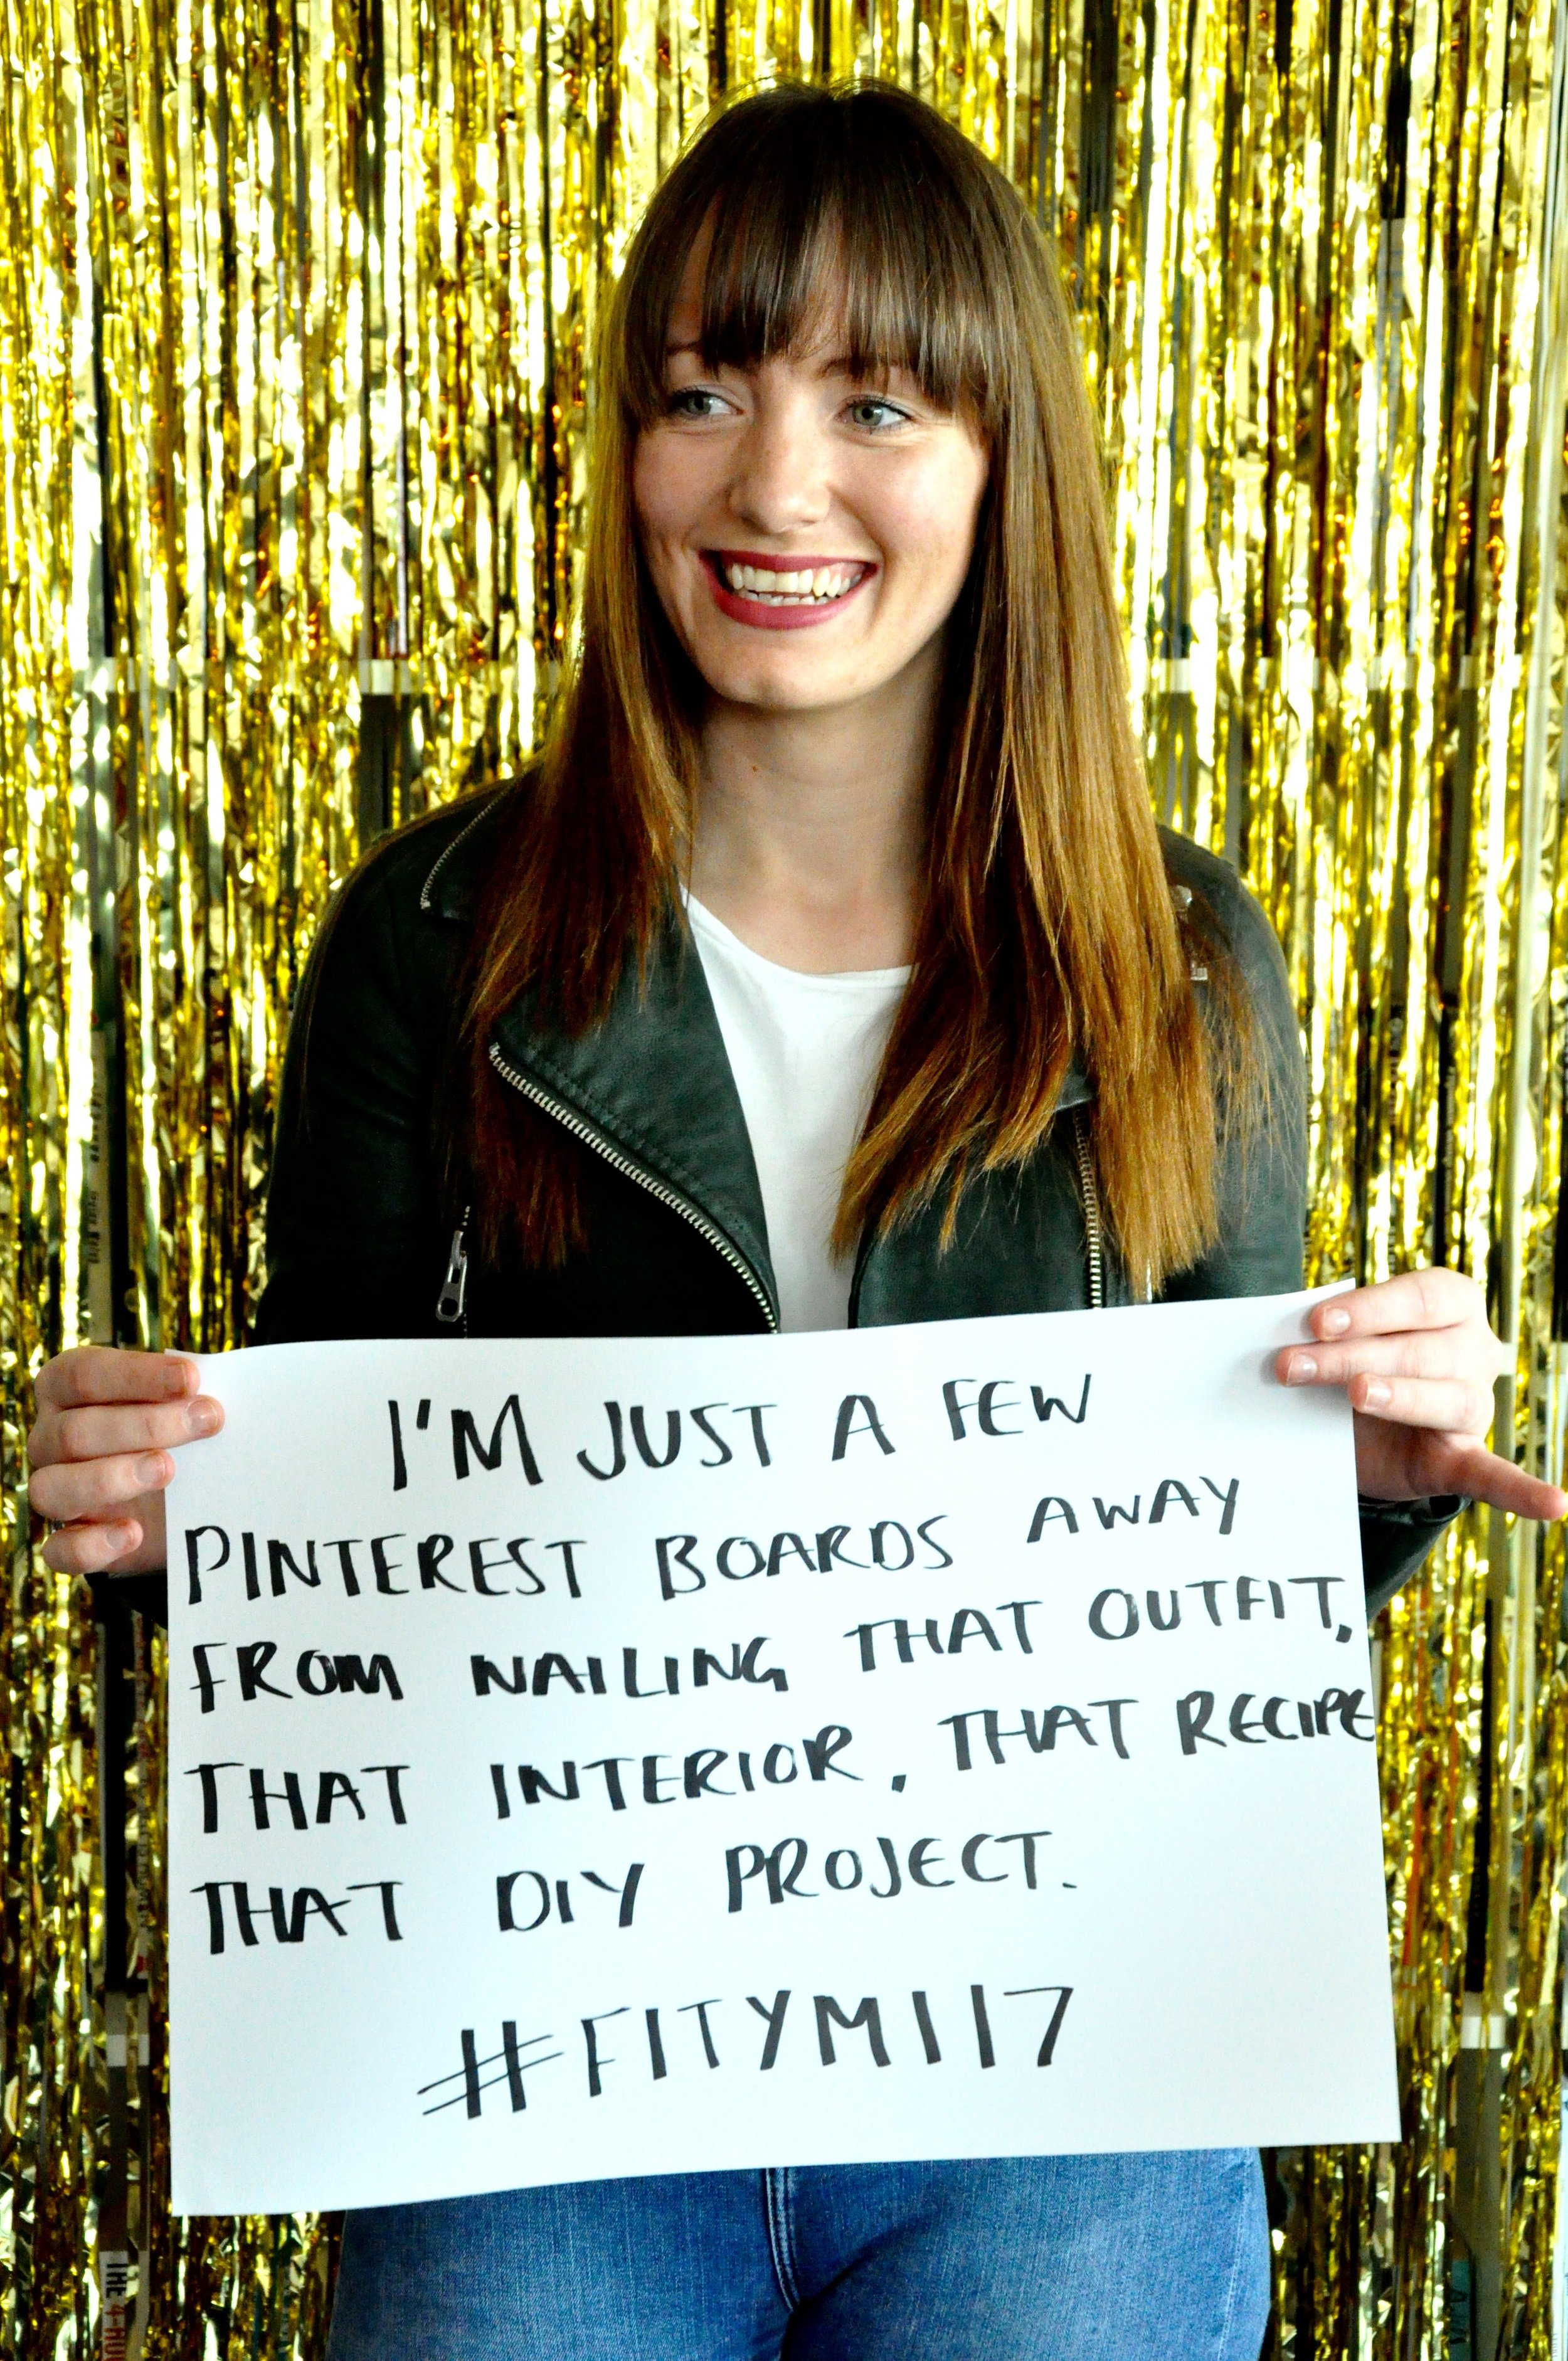 """Jemma Craig - Digital Content/Marketing Specialist   """"Living in this day and age, inspiration is everywhere. Being a serial-pinner and follower of countless blogs, the constant bombardment of imagery can leave you exhilarated and exhausted all at once.  But, seeing others achieving goals, creating their own aesthetic has kept me going on my own path. At first a borrowed confidence from these kindred spirits, eventually has led to a real confidence in myself. I moved countries to work in the Art world, educating myself on the industry, constantly sharpening my skill set as a digital content creator, aspiring to create my own brand someday soon.  Millennials might have earned a bad rep for their attention deficiencies, but keeping your eyes on many things, the idea of always reaching for more, this aspirational attitude,really keeps the fire burning, within.""""  Jemma is the Assistant Creative Director at renowned food company INDPT, inventor of the popular hashtag #pursuepretty and is a bona fide social media darling with over 100k followers on instagram. @jemmacraig"""